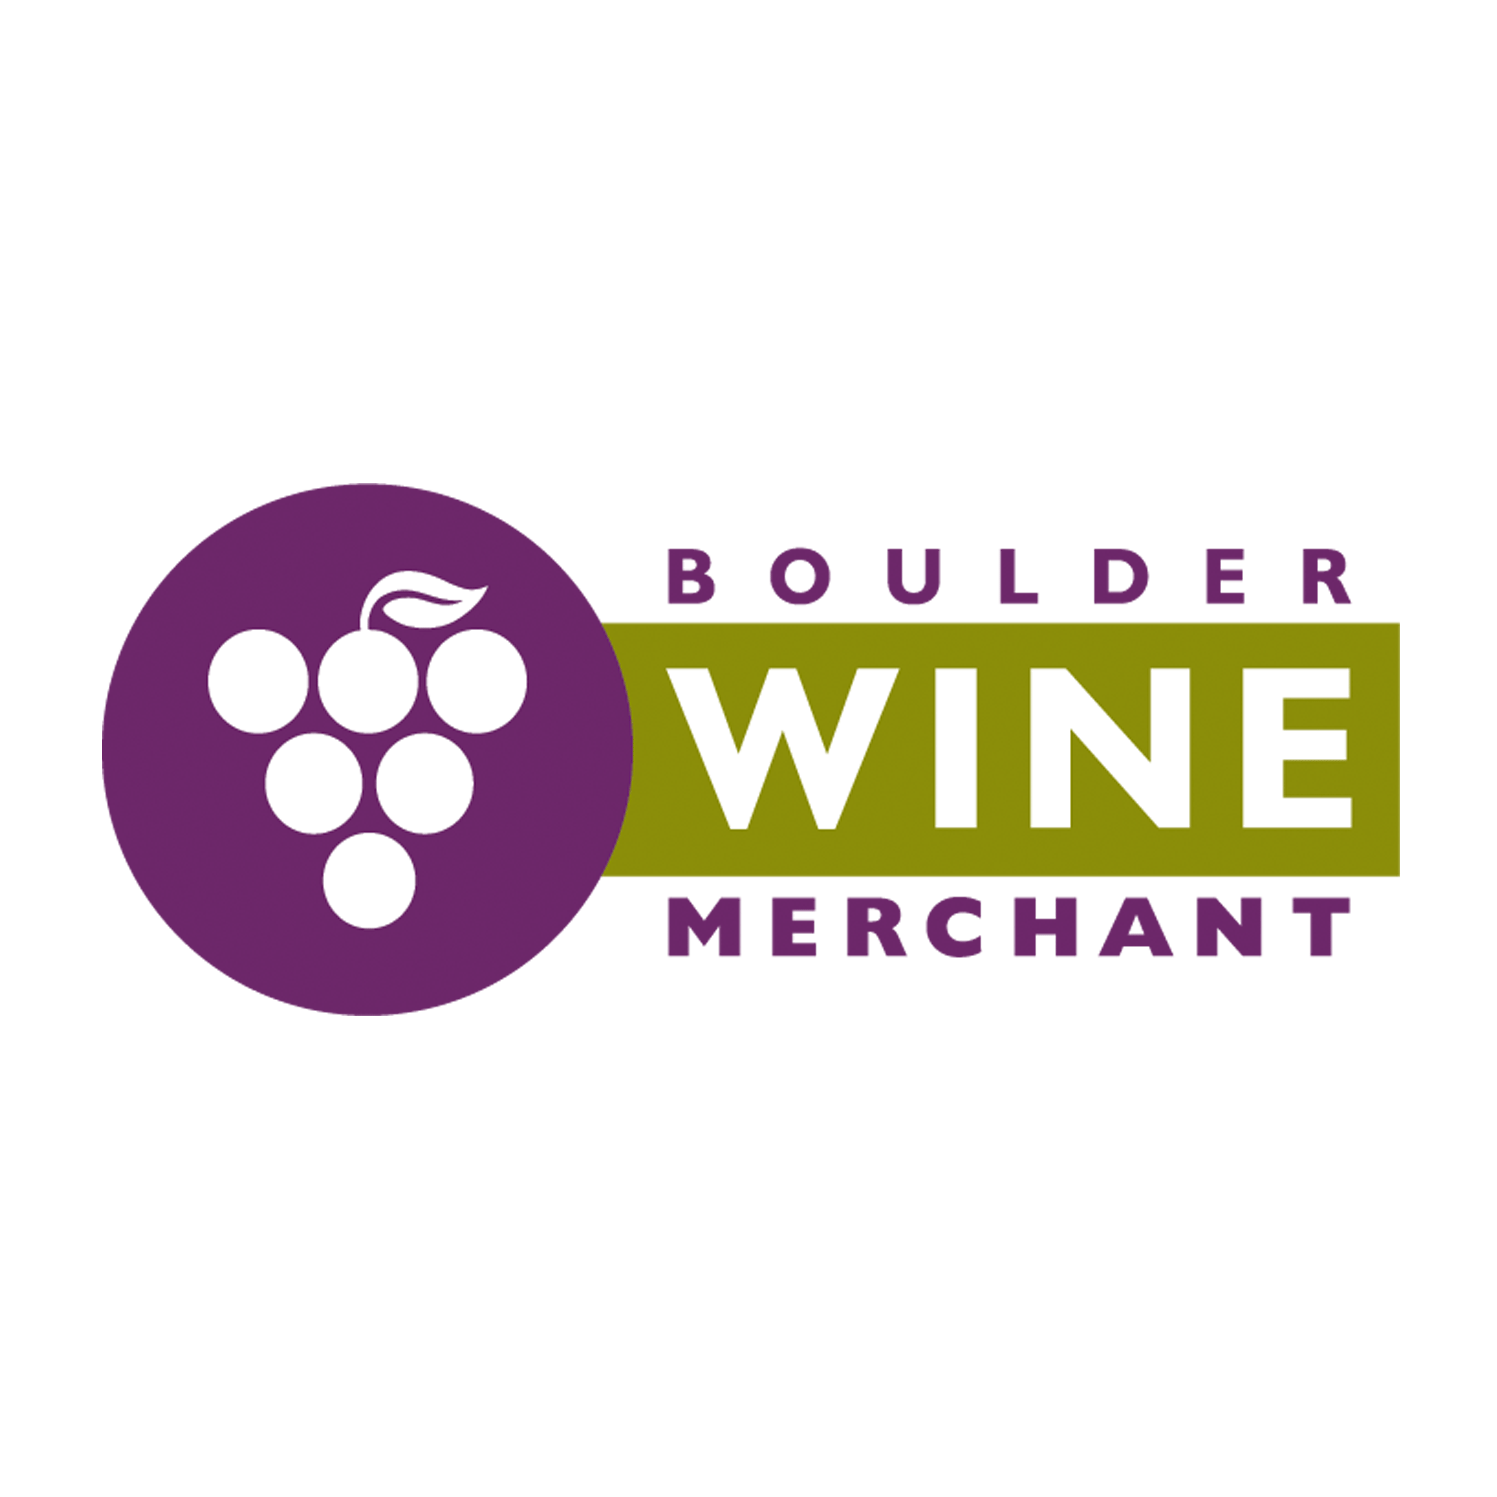 Boulder Wine Merchant Logo Design